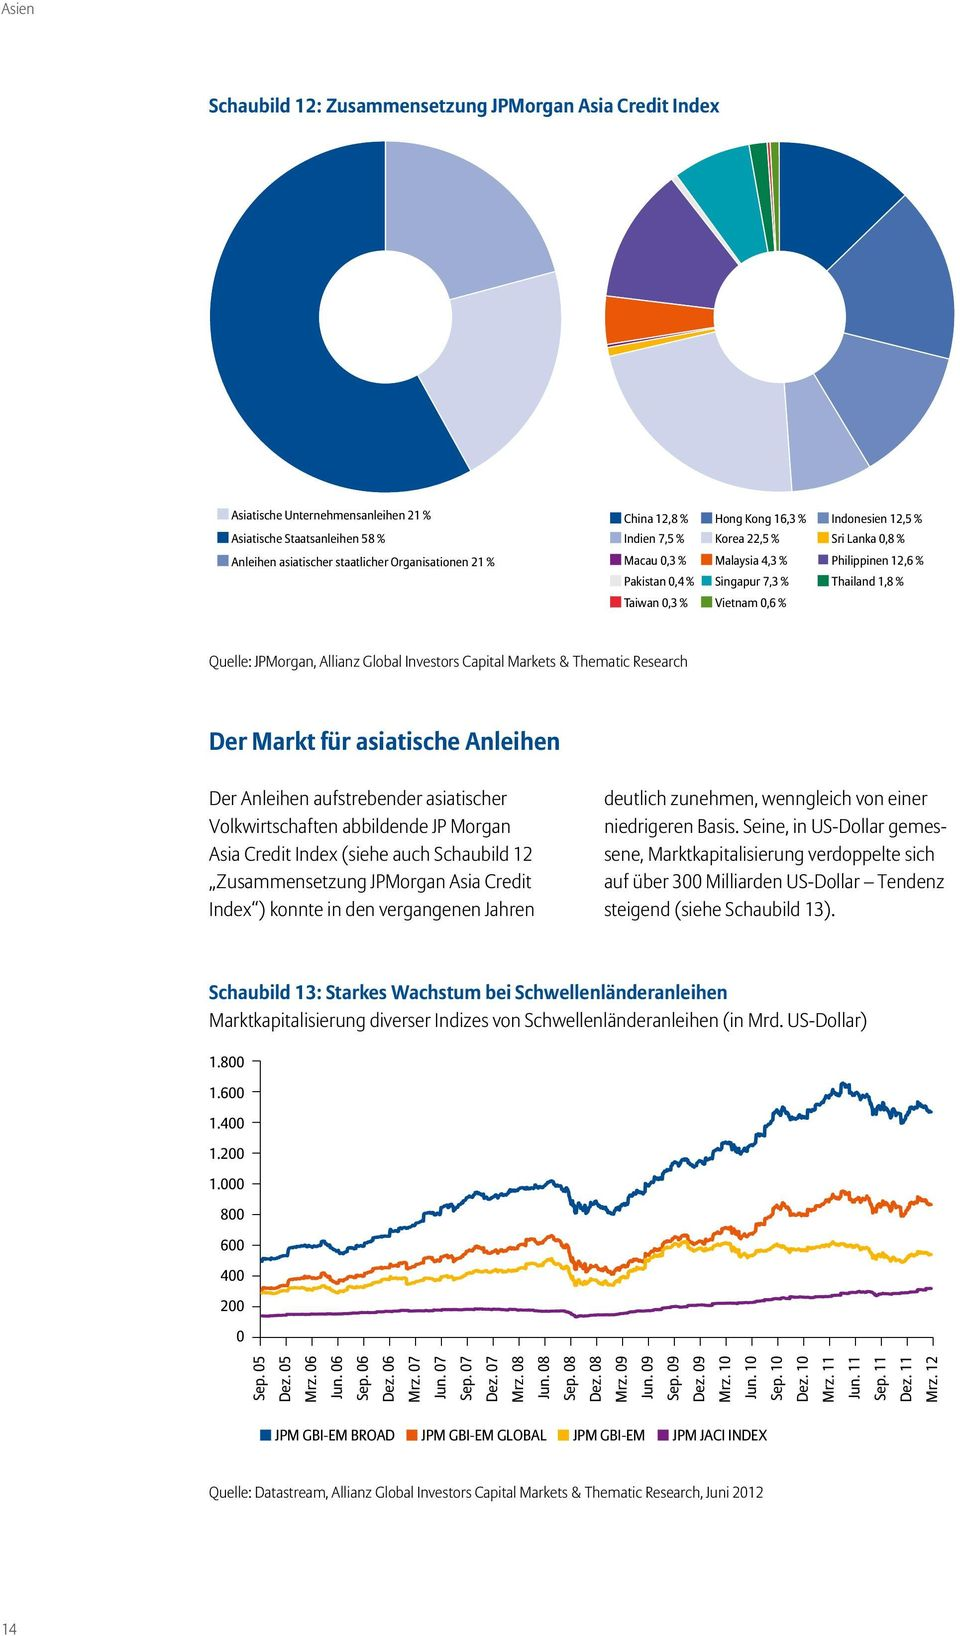 Allianz Global Investors Capital Markets & Thematic Research Der Markt für asiatische Anleihen Der Anleihen aufstrebender asiatischer Volkwirtschaften abbildende JP Morgan Asia Credit Index (siehe